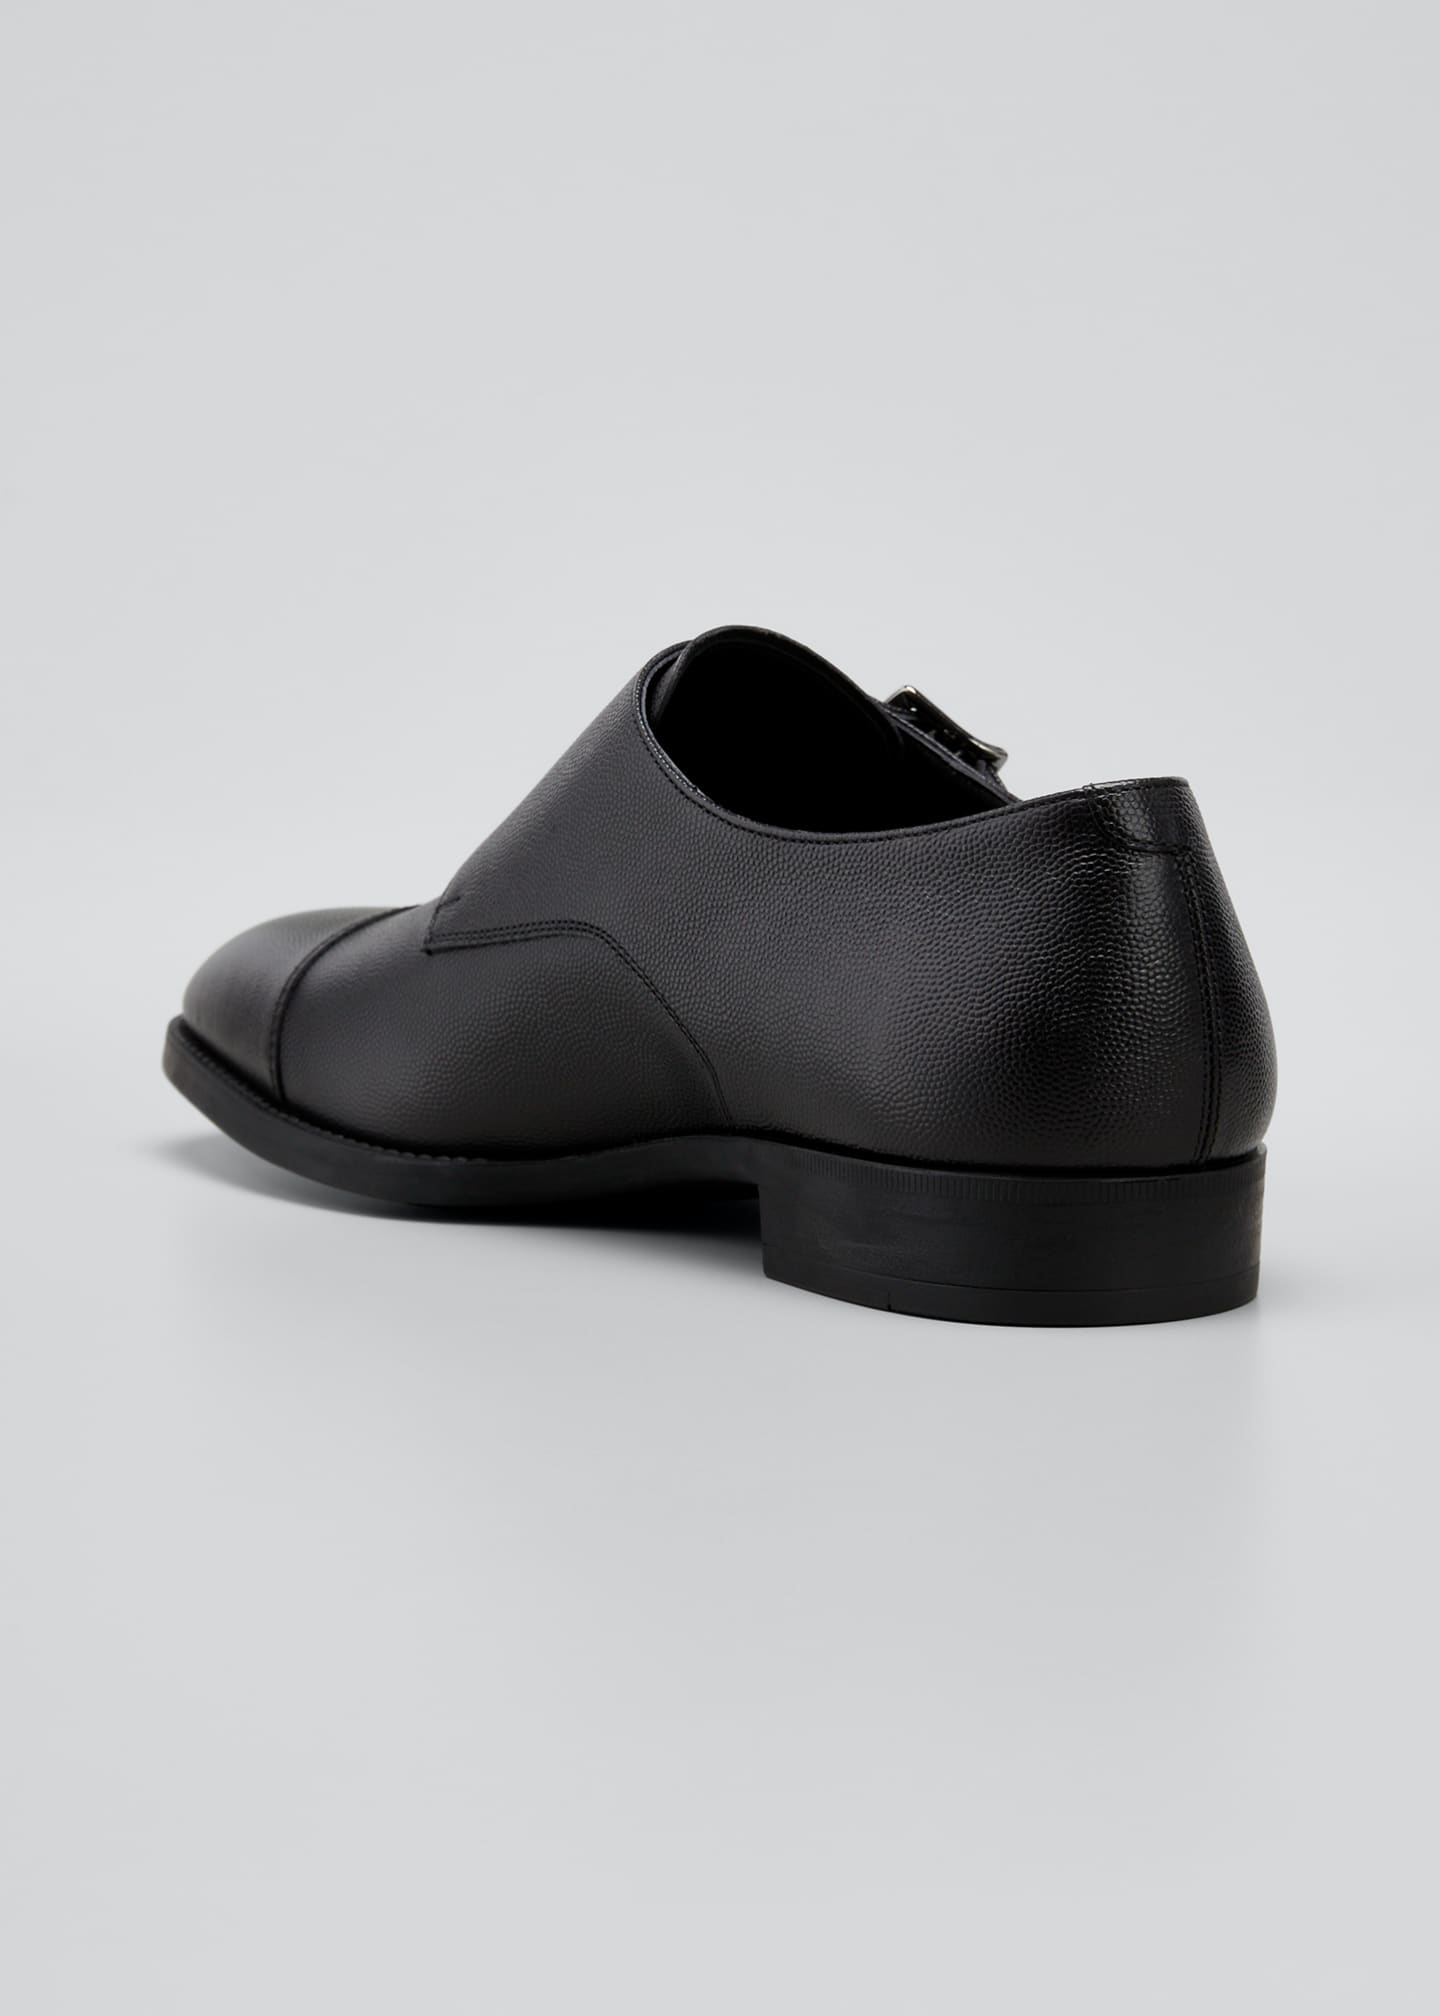 Image 2 of 3: Men's Double-Monk Strap Pebbled Leather Loafers